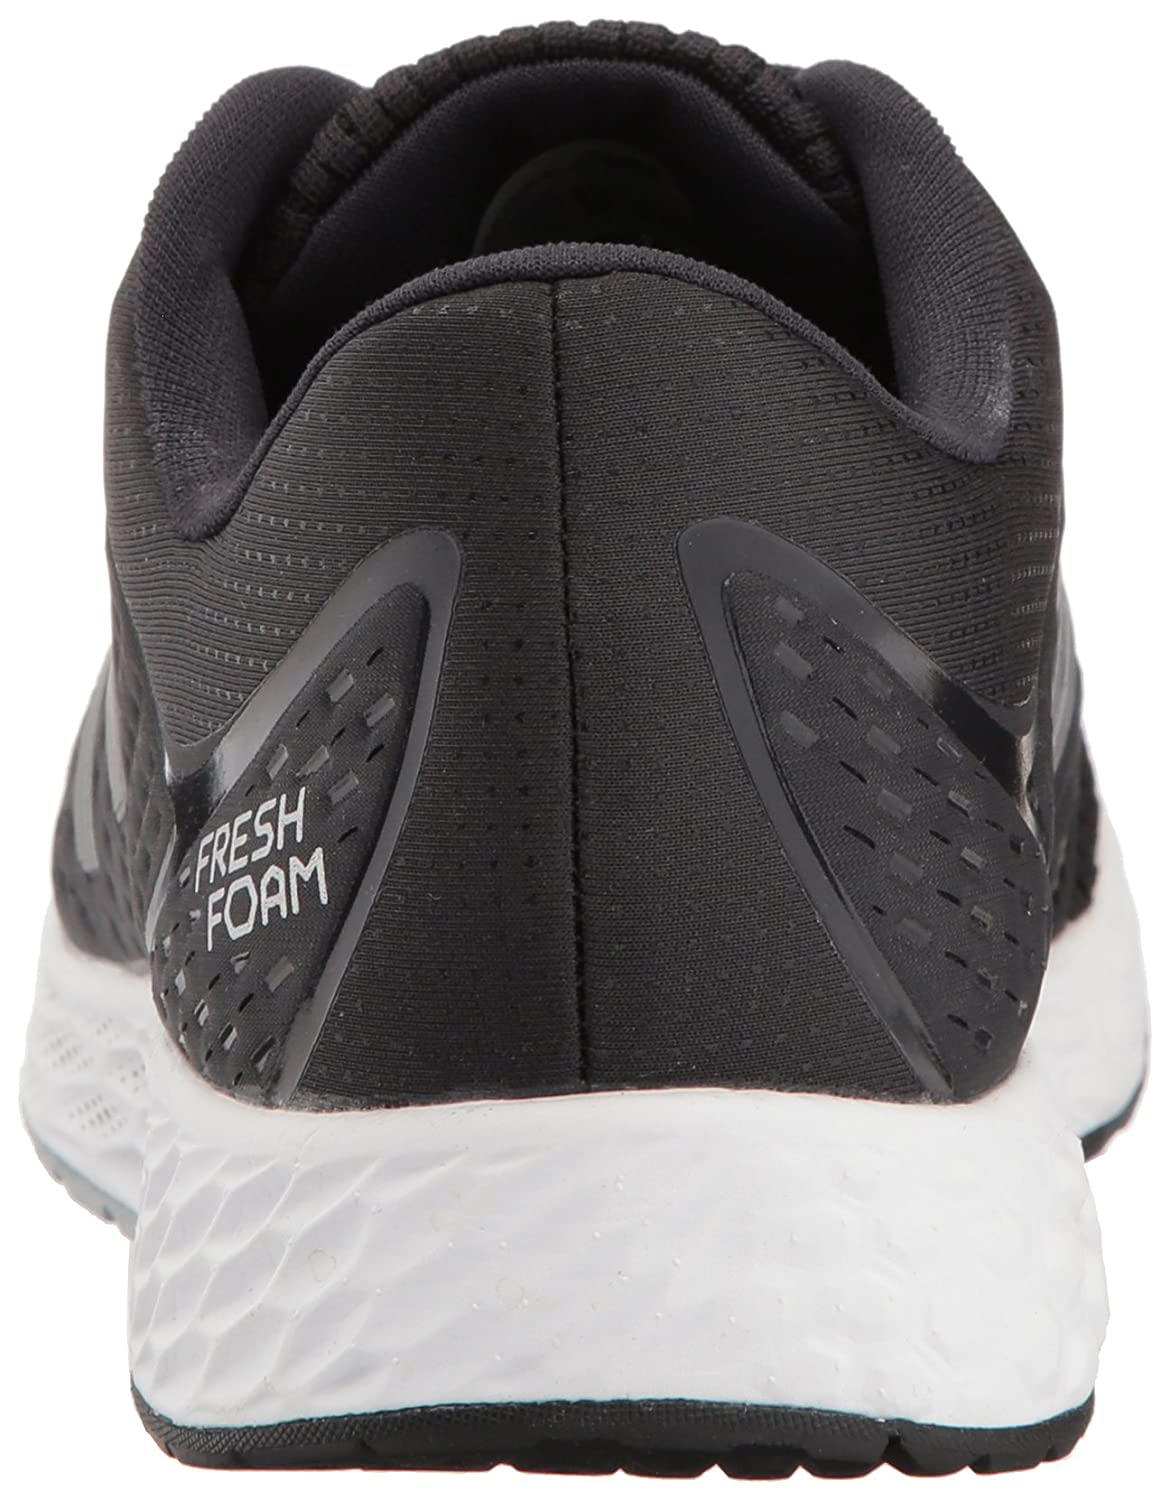 New Balance Women's Zante V4 Fresh Foam Running US|Black Shoe B06XSCSCM5 10 D US|Black Running a02a12